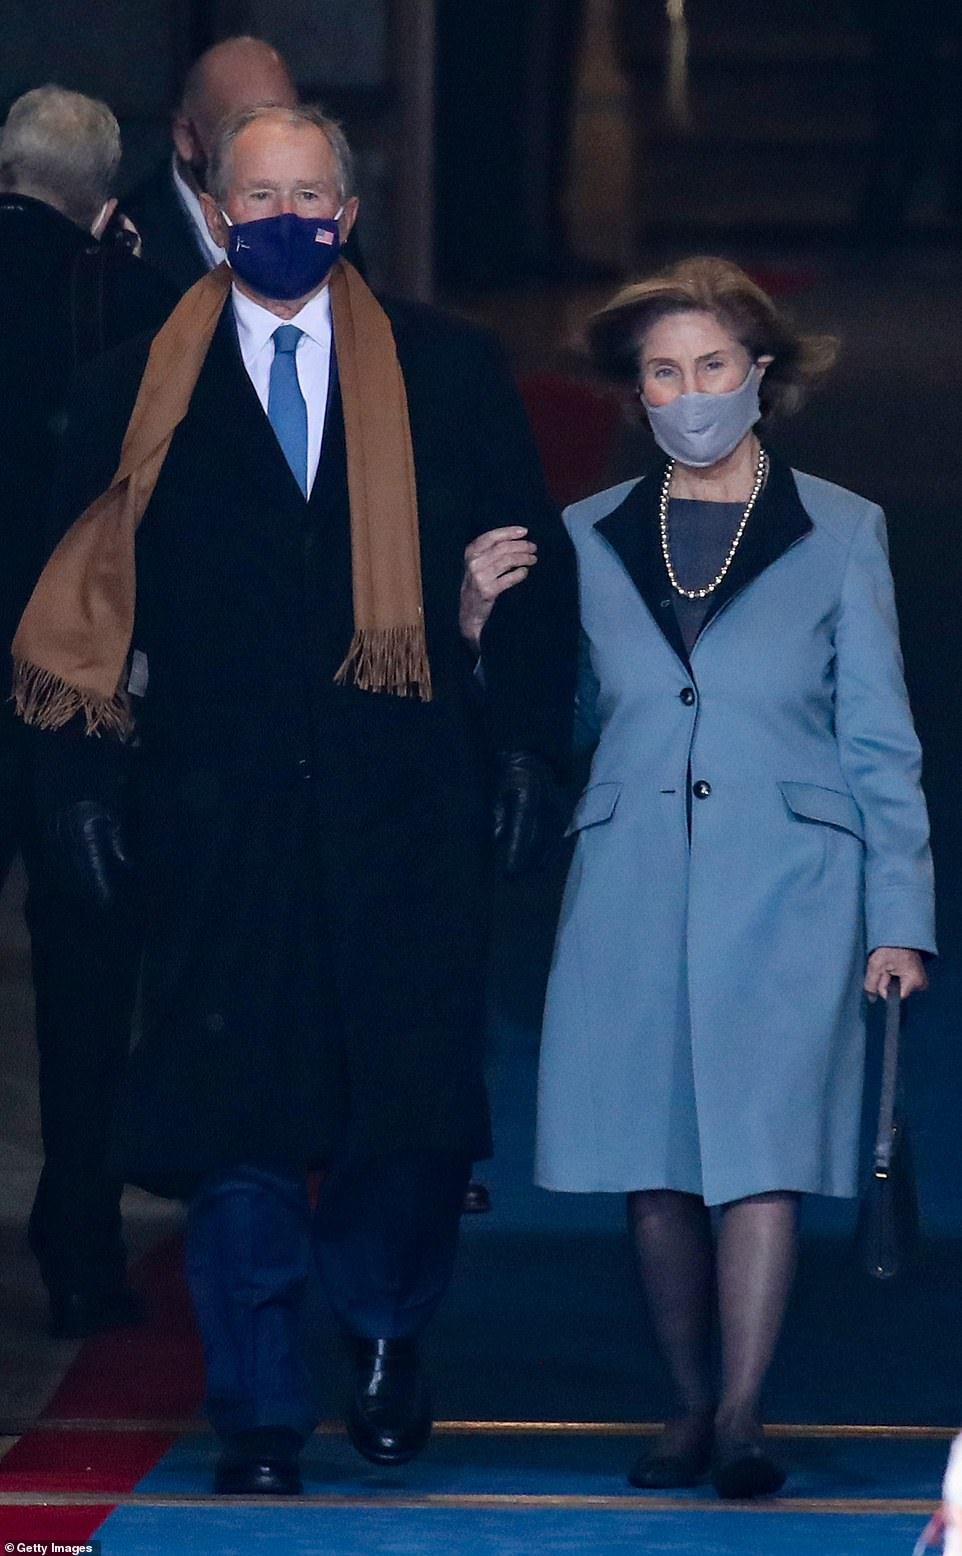 Arm-in-arm: Mrs. Bush arrived at the U.S. Capitol with her husband, former President George W. Bush